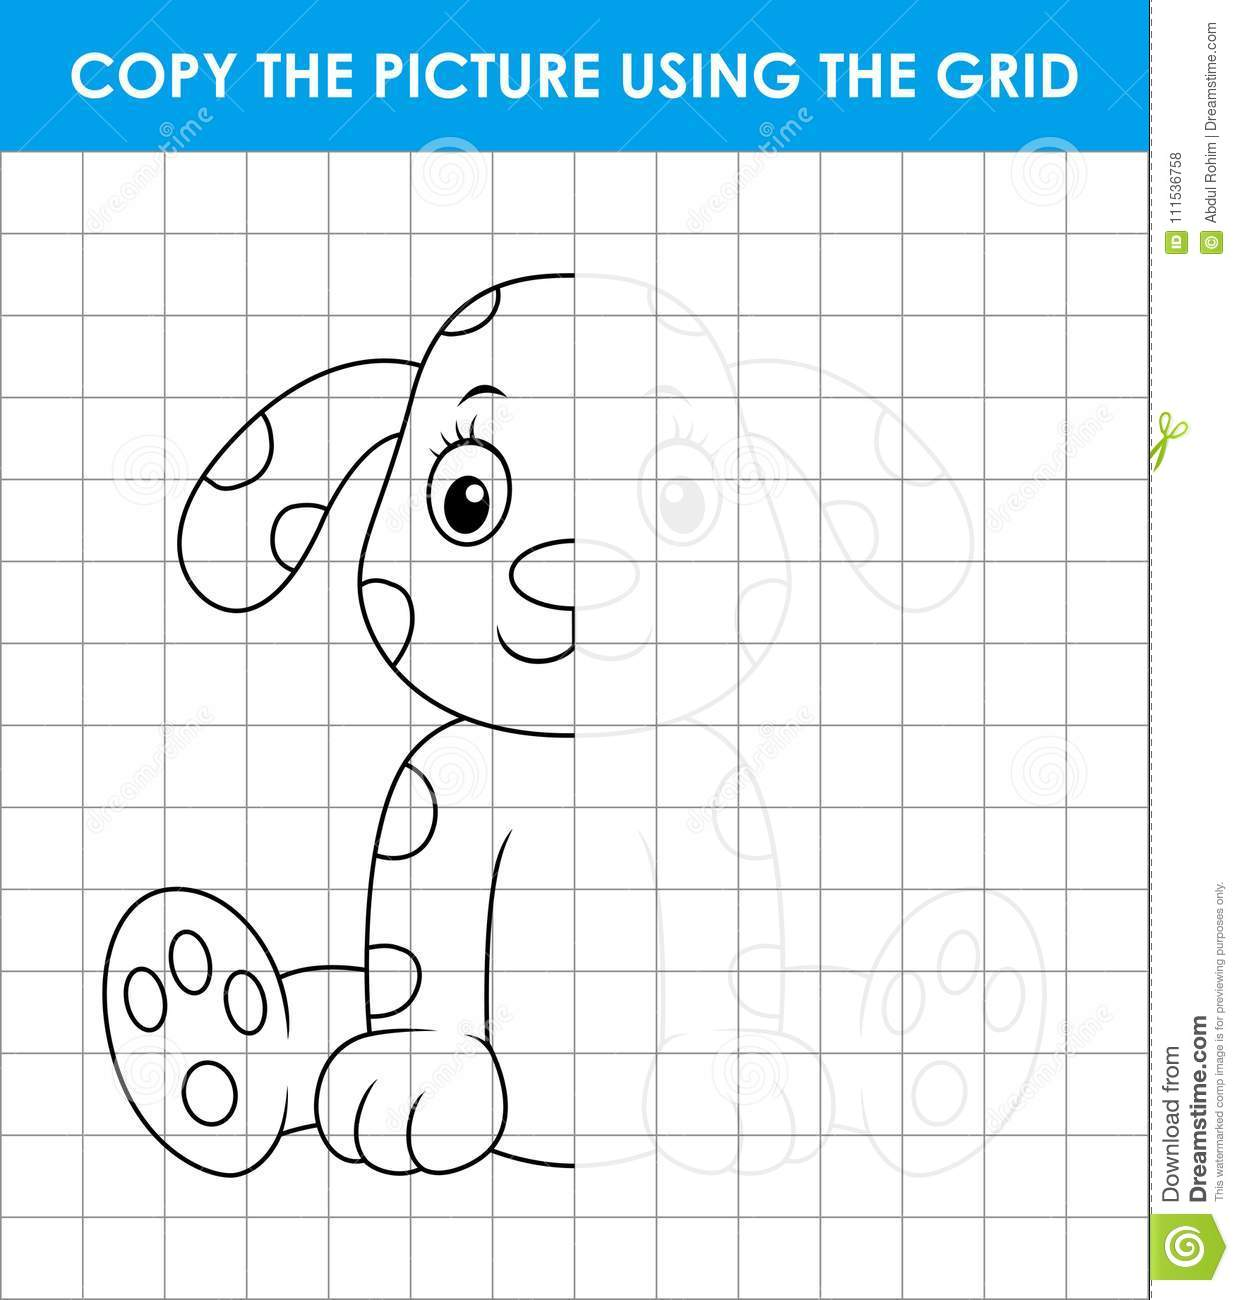 cute dalmatian dog sitting grid copy game complete the picture